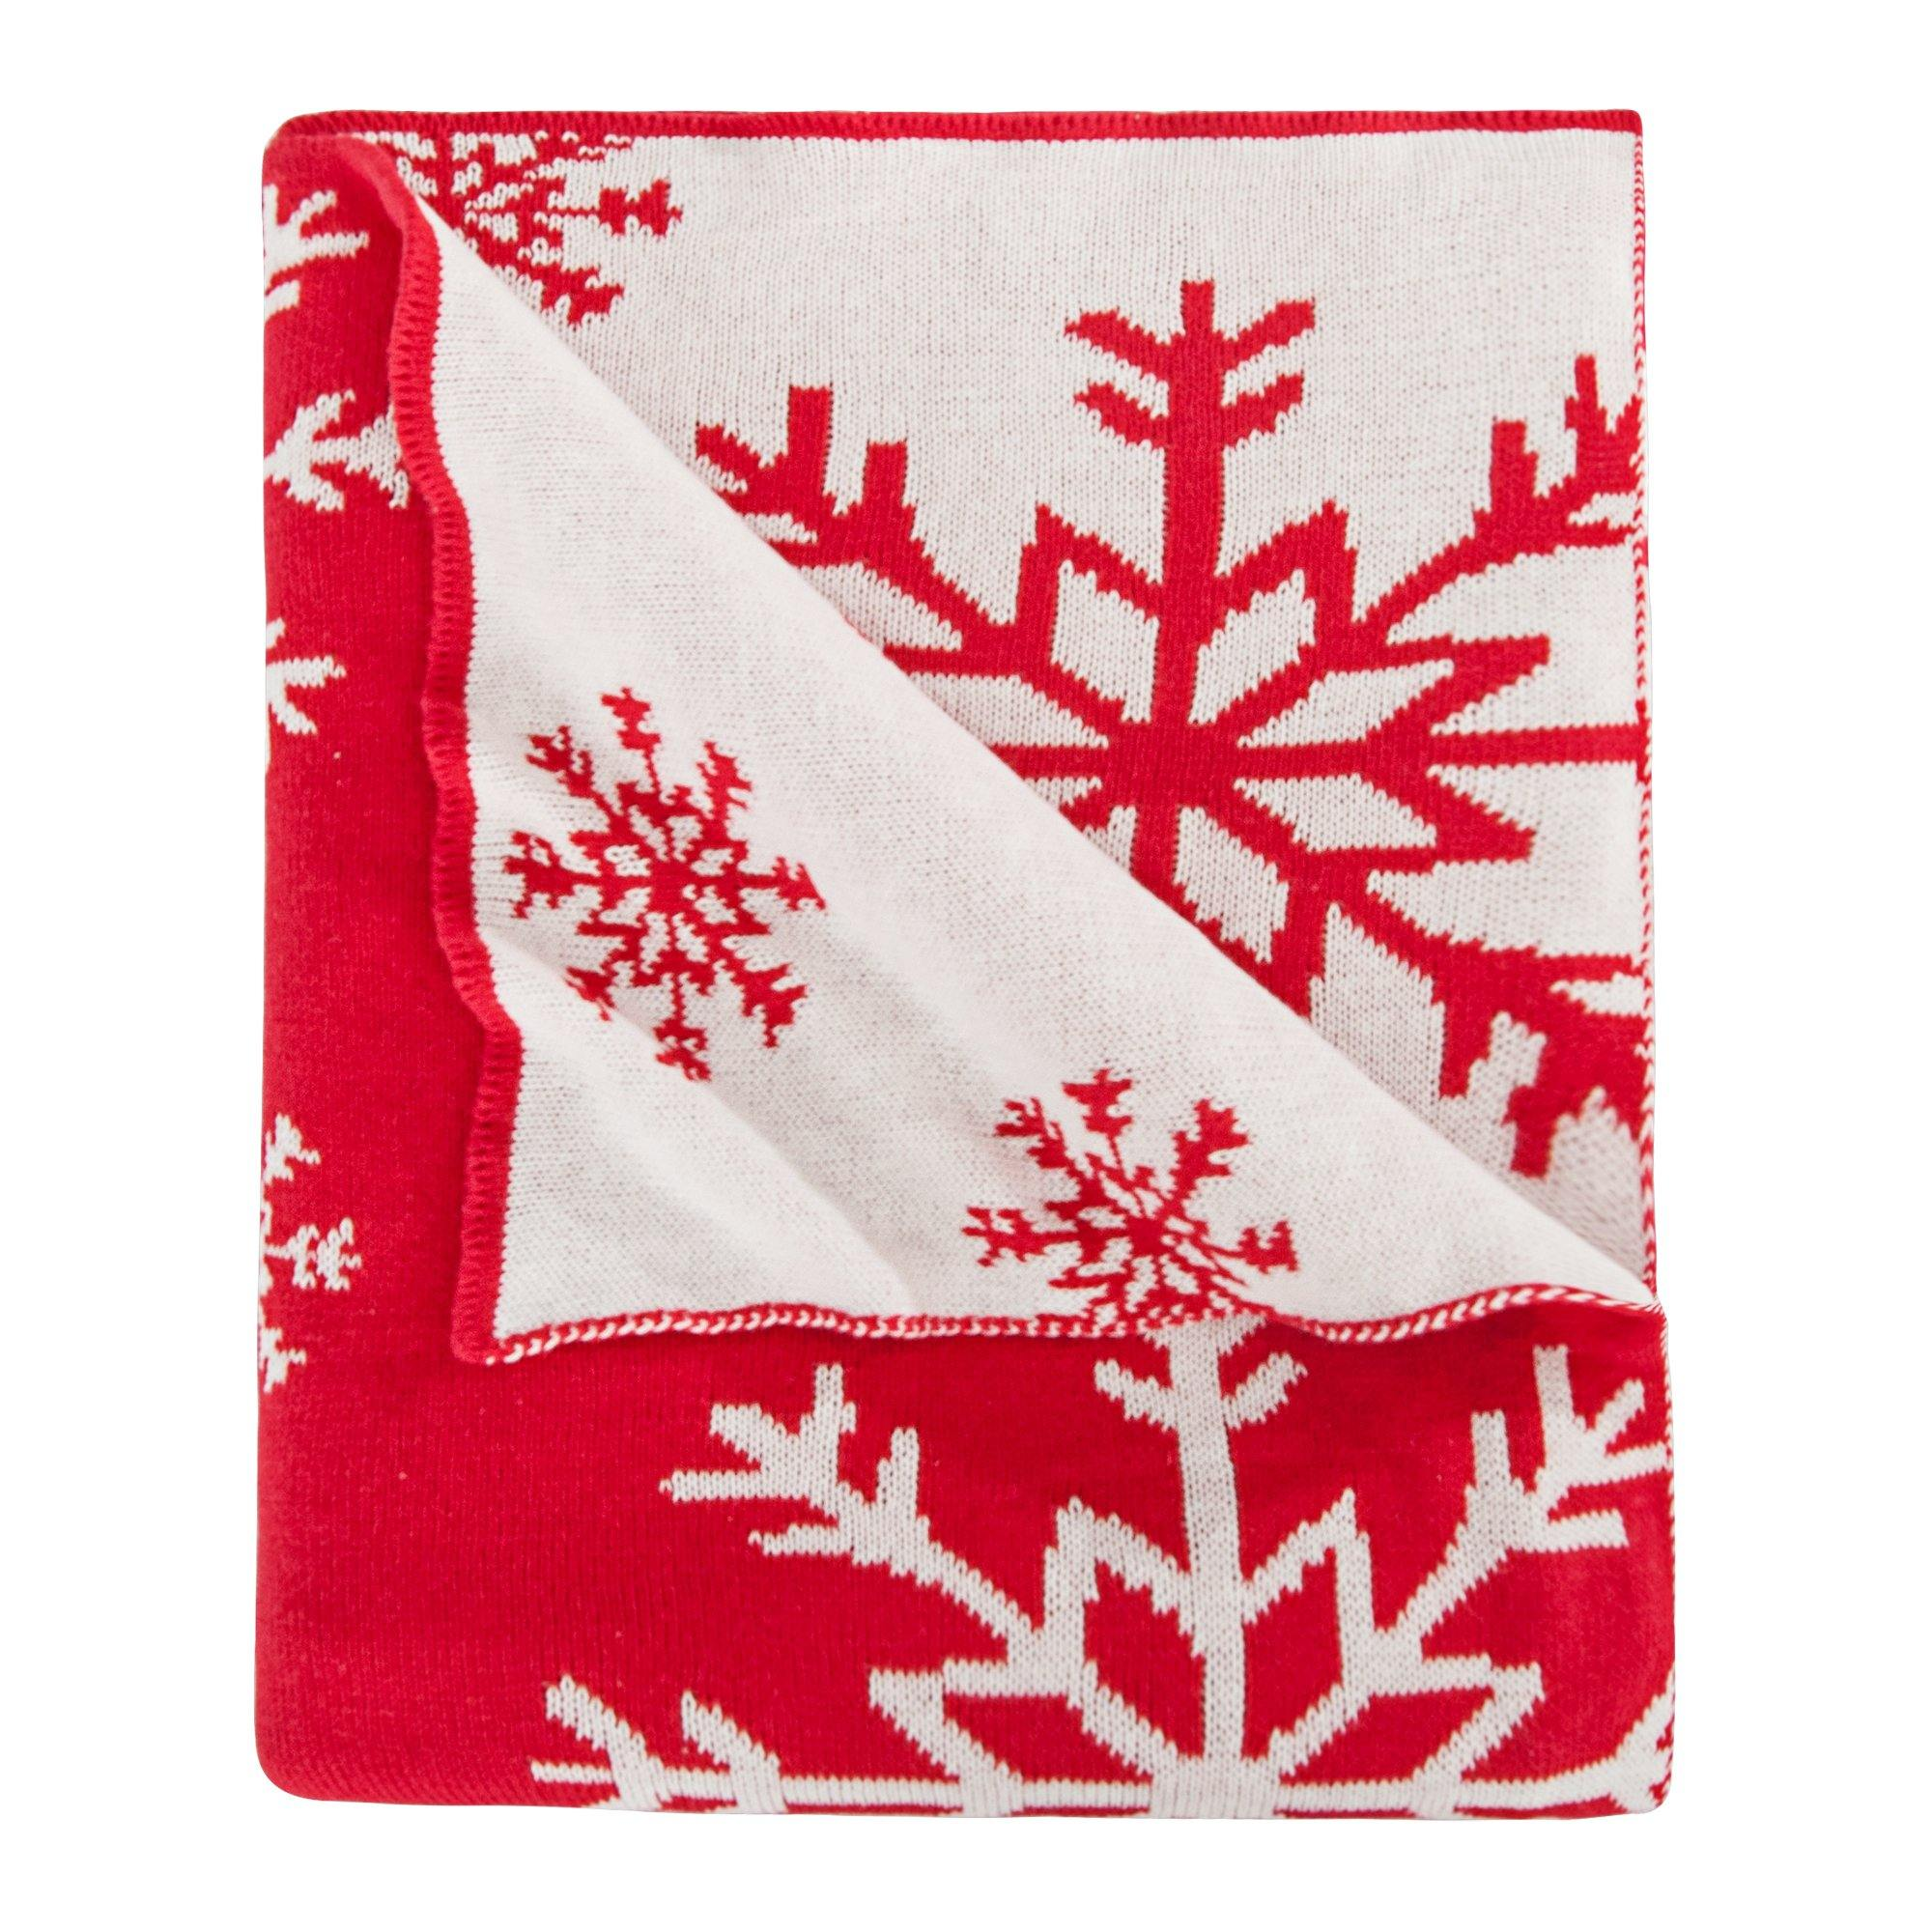 "NTBAY 100% Cotton Cable Knit Throw Blanket Super Soft Warm with Snowflakes Pattern Design(51""x 67"", Red and White)"